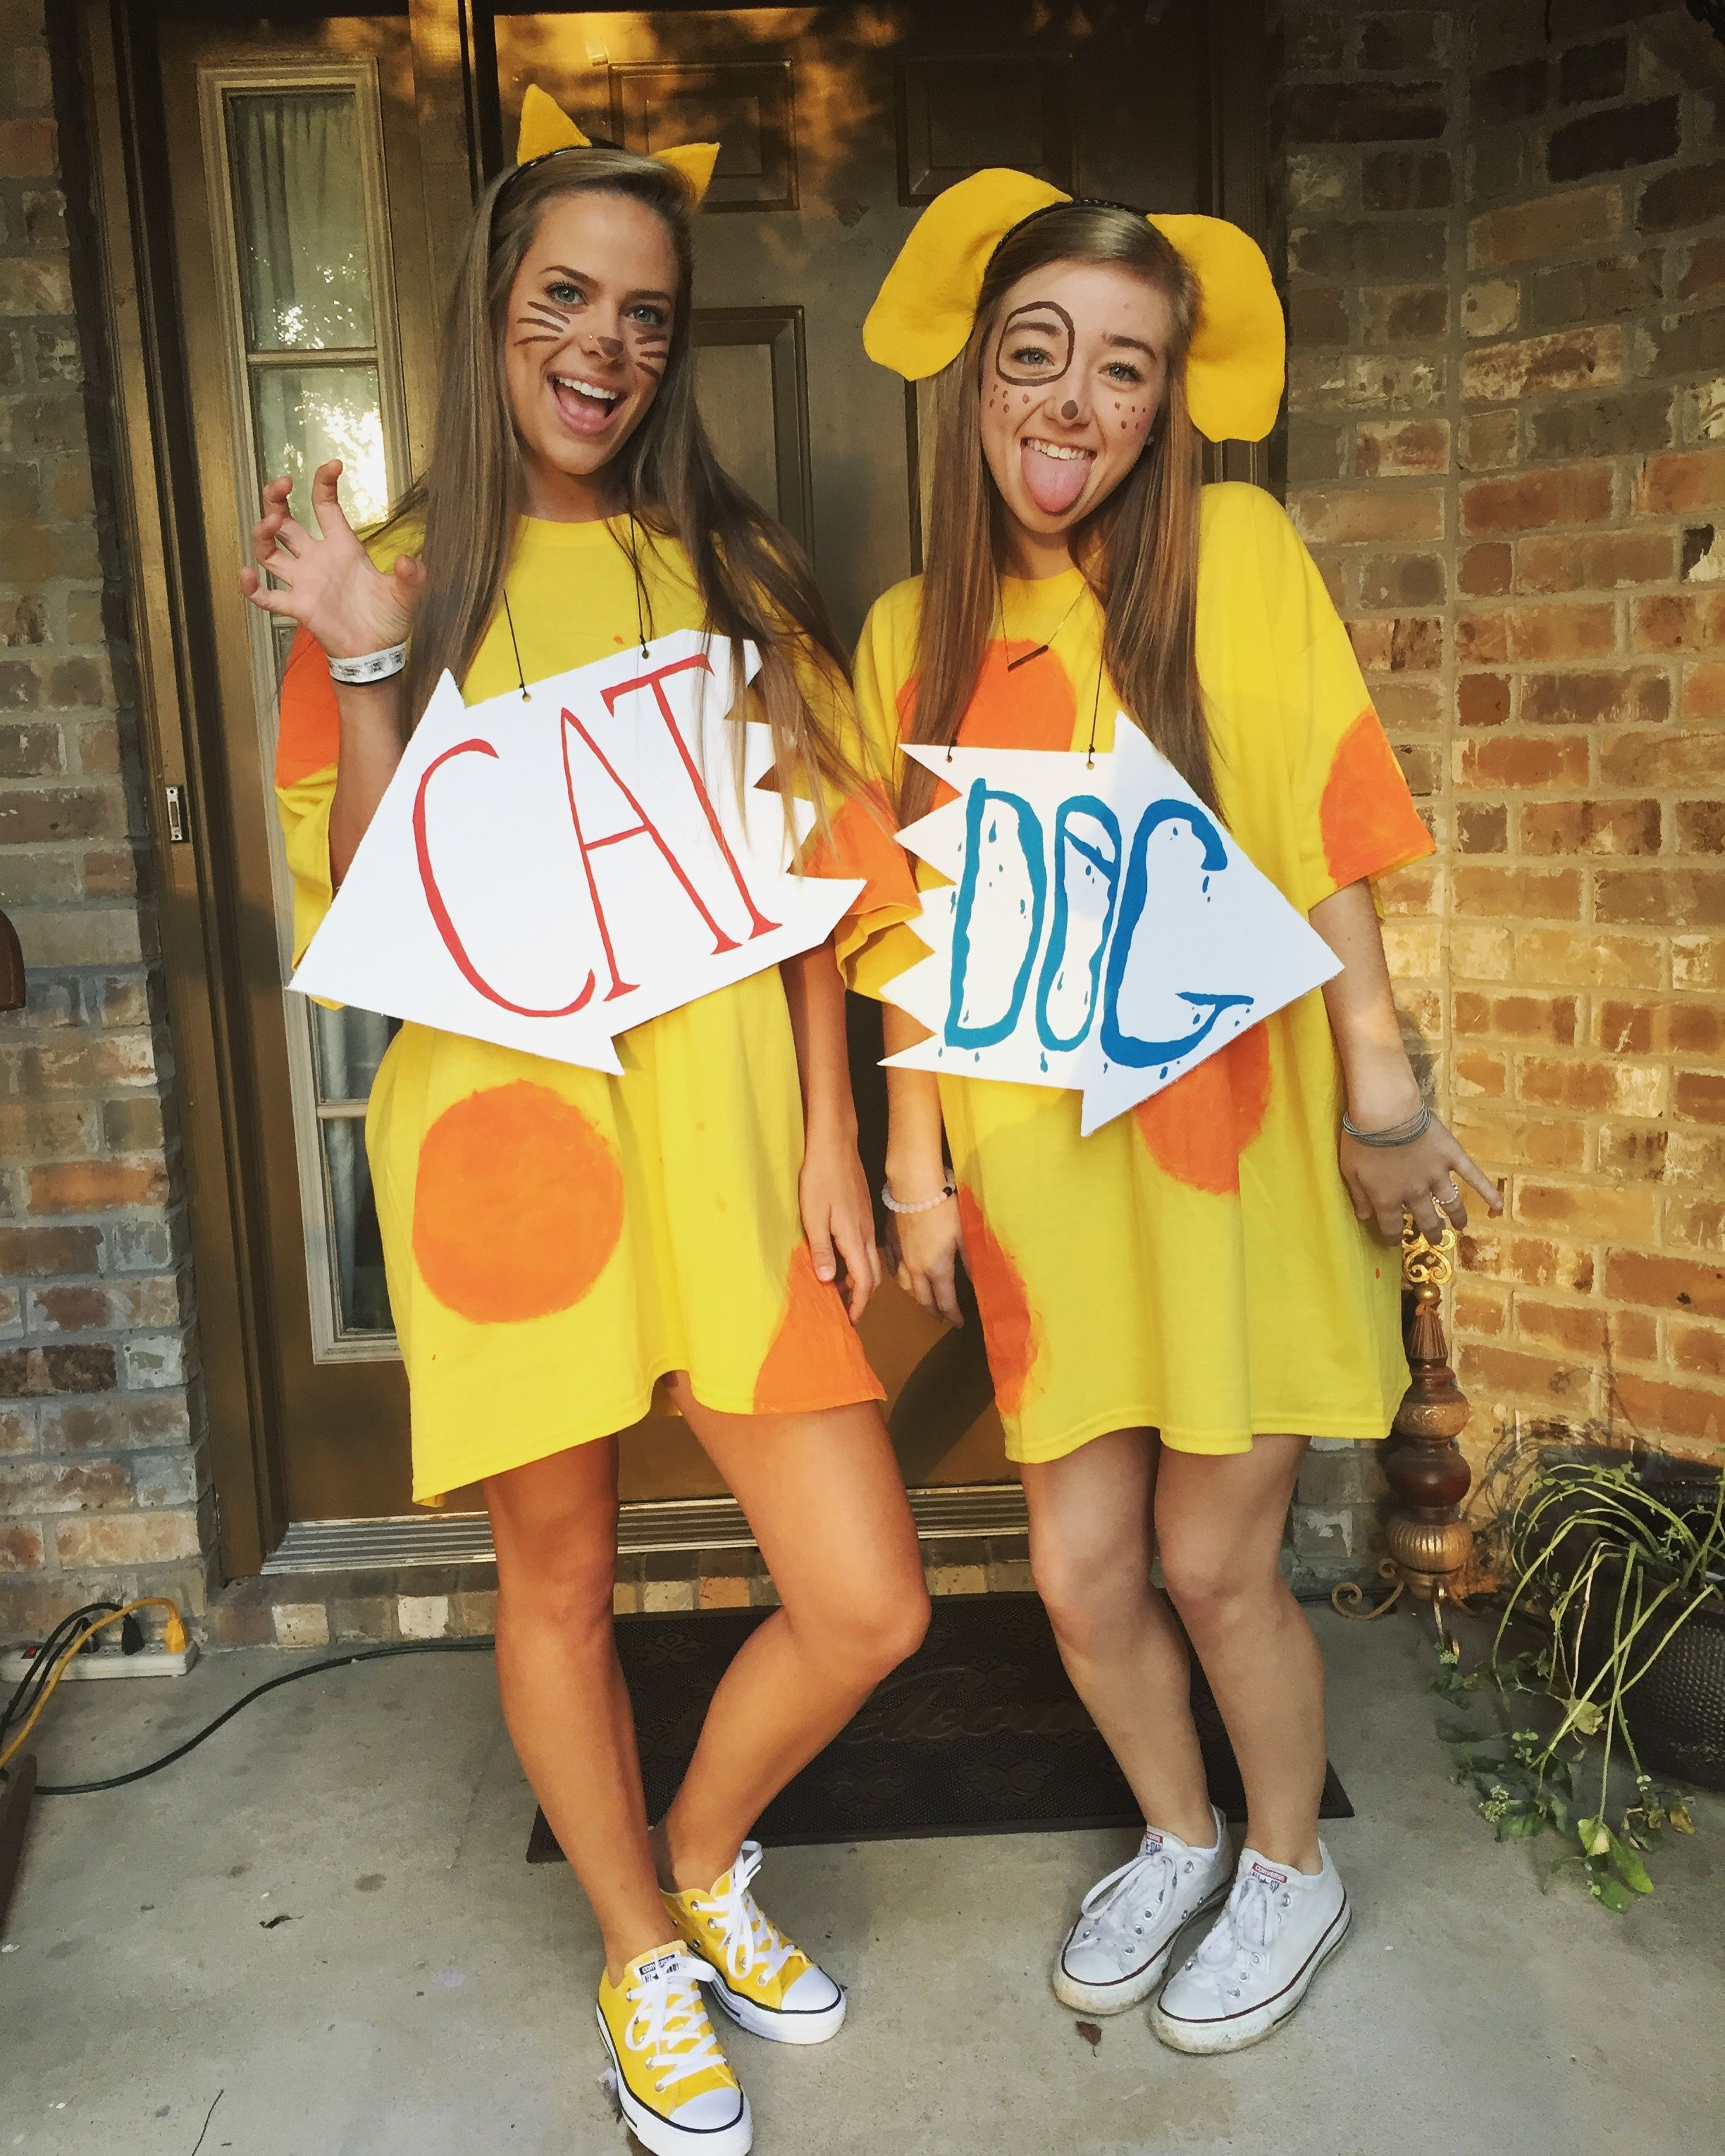 Cat Dog Costume Matching Halloween Costumes Duo Halloween